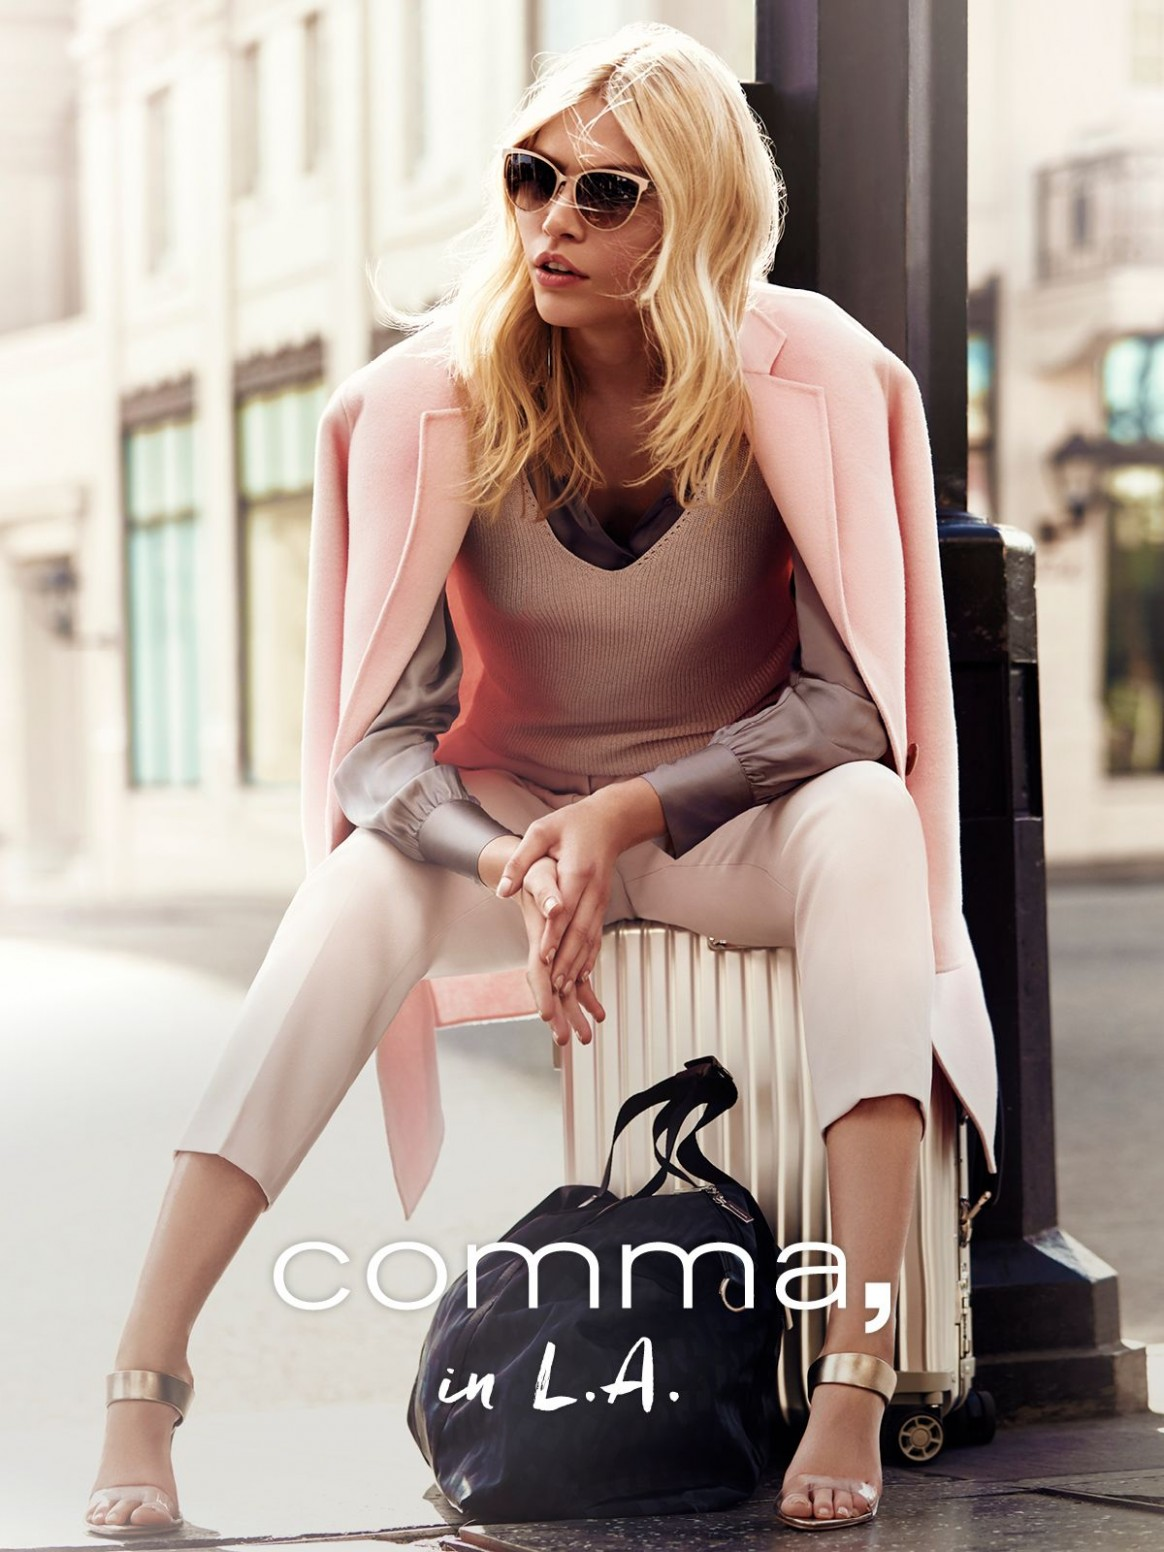 comma fashion  Spring/Summer 11  comma in L.A. #commafashion